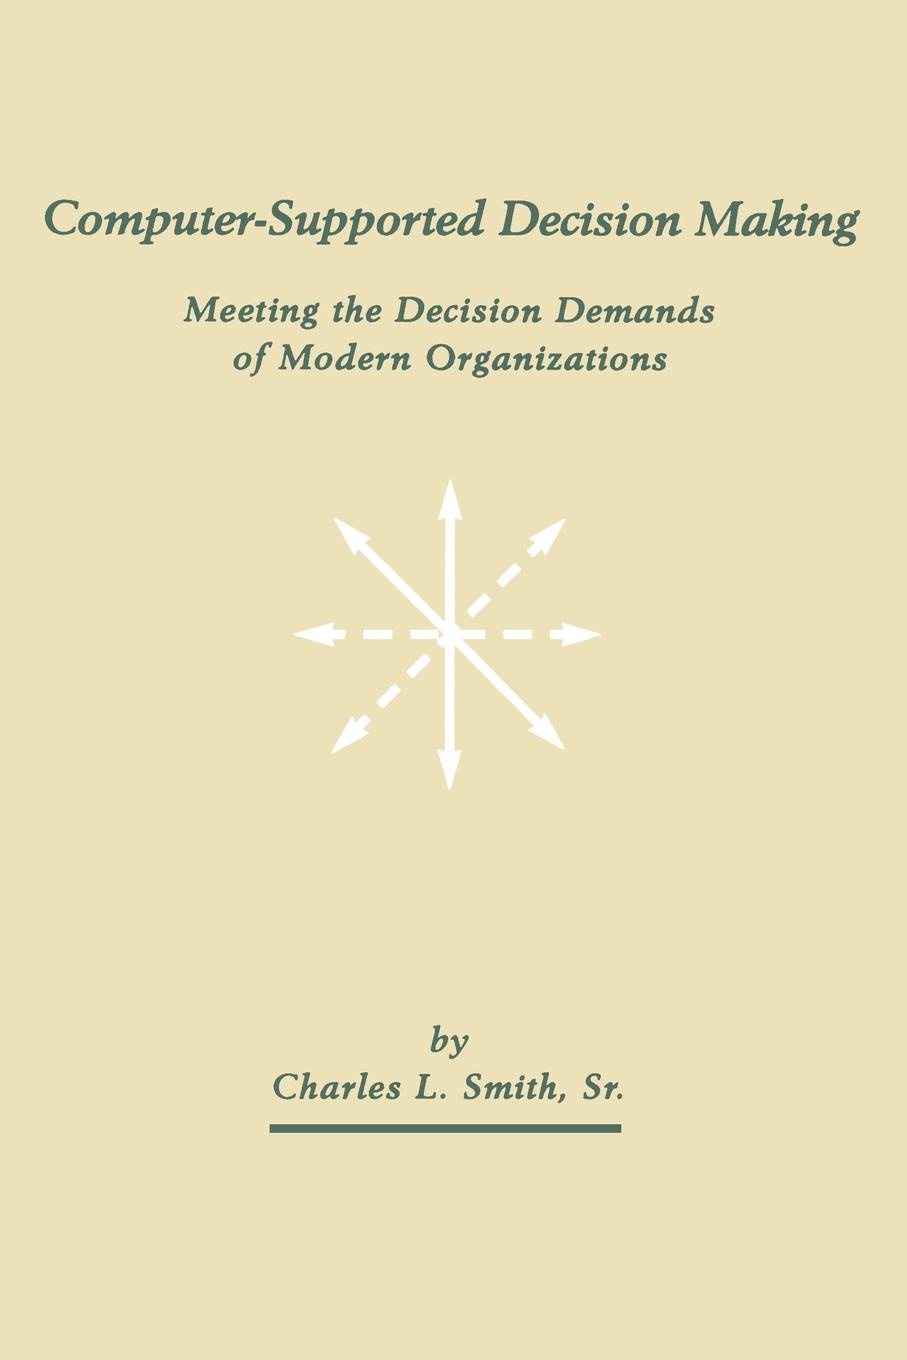 лучшая цена Charles L. Smith Computer-Supported Decision Making. Meeting the Decision Demands of Modern Organizations